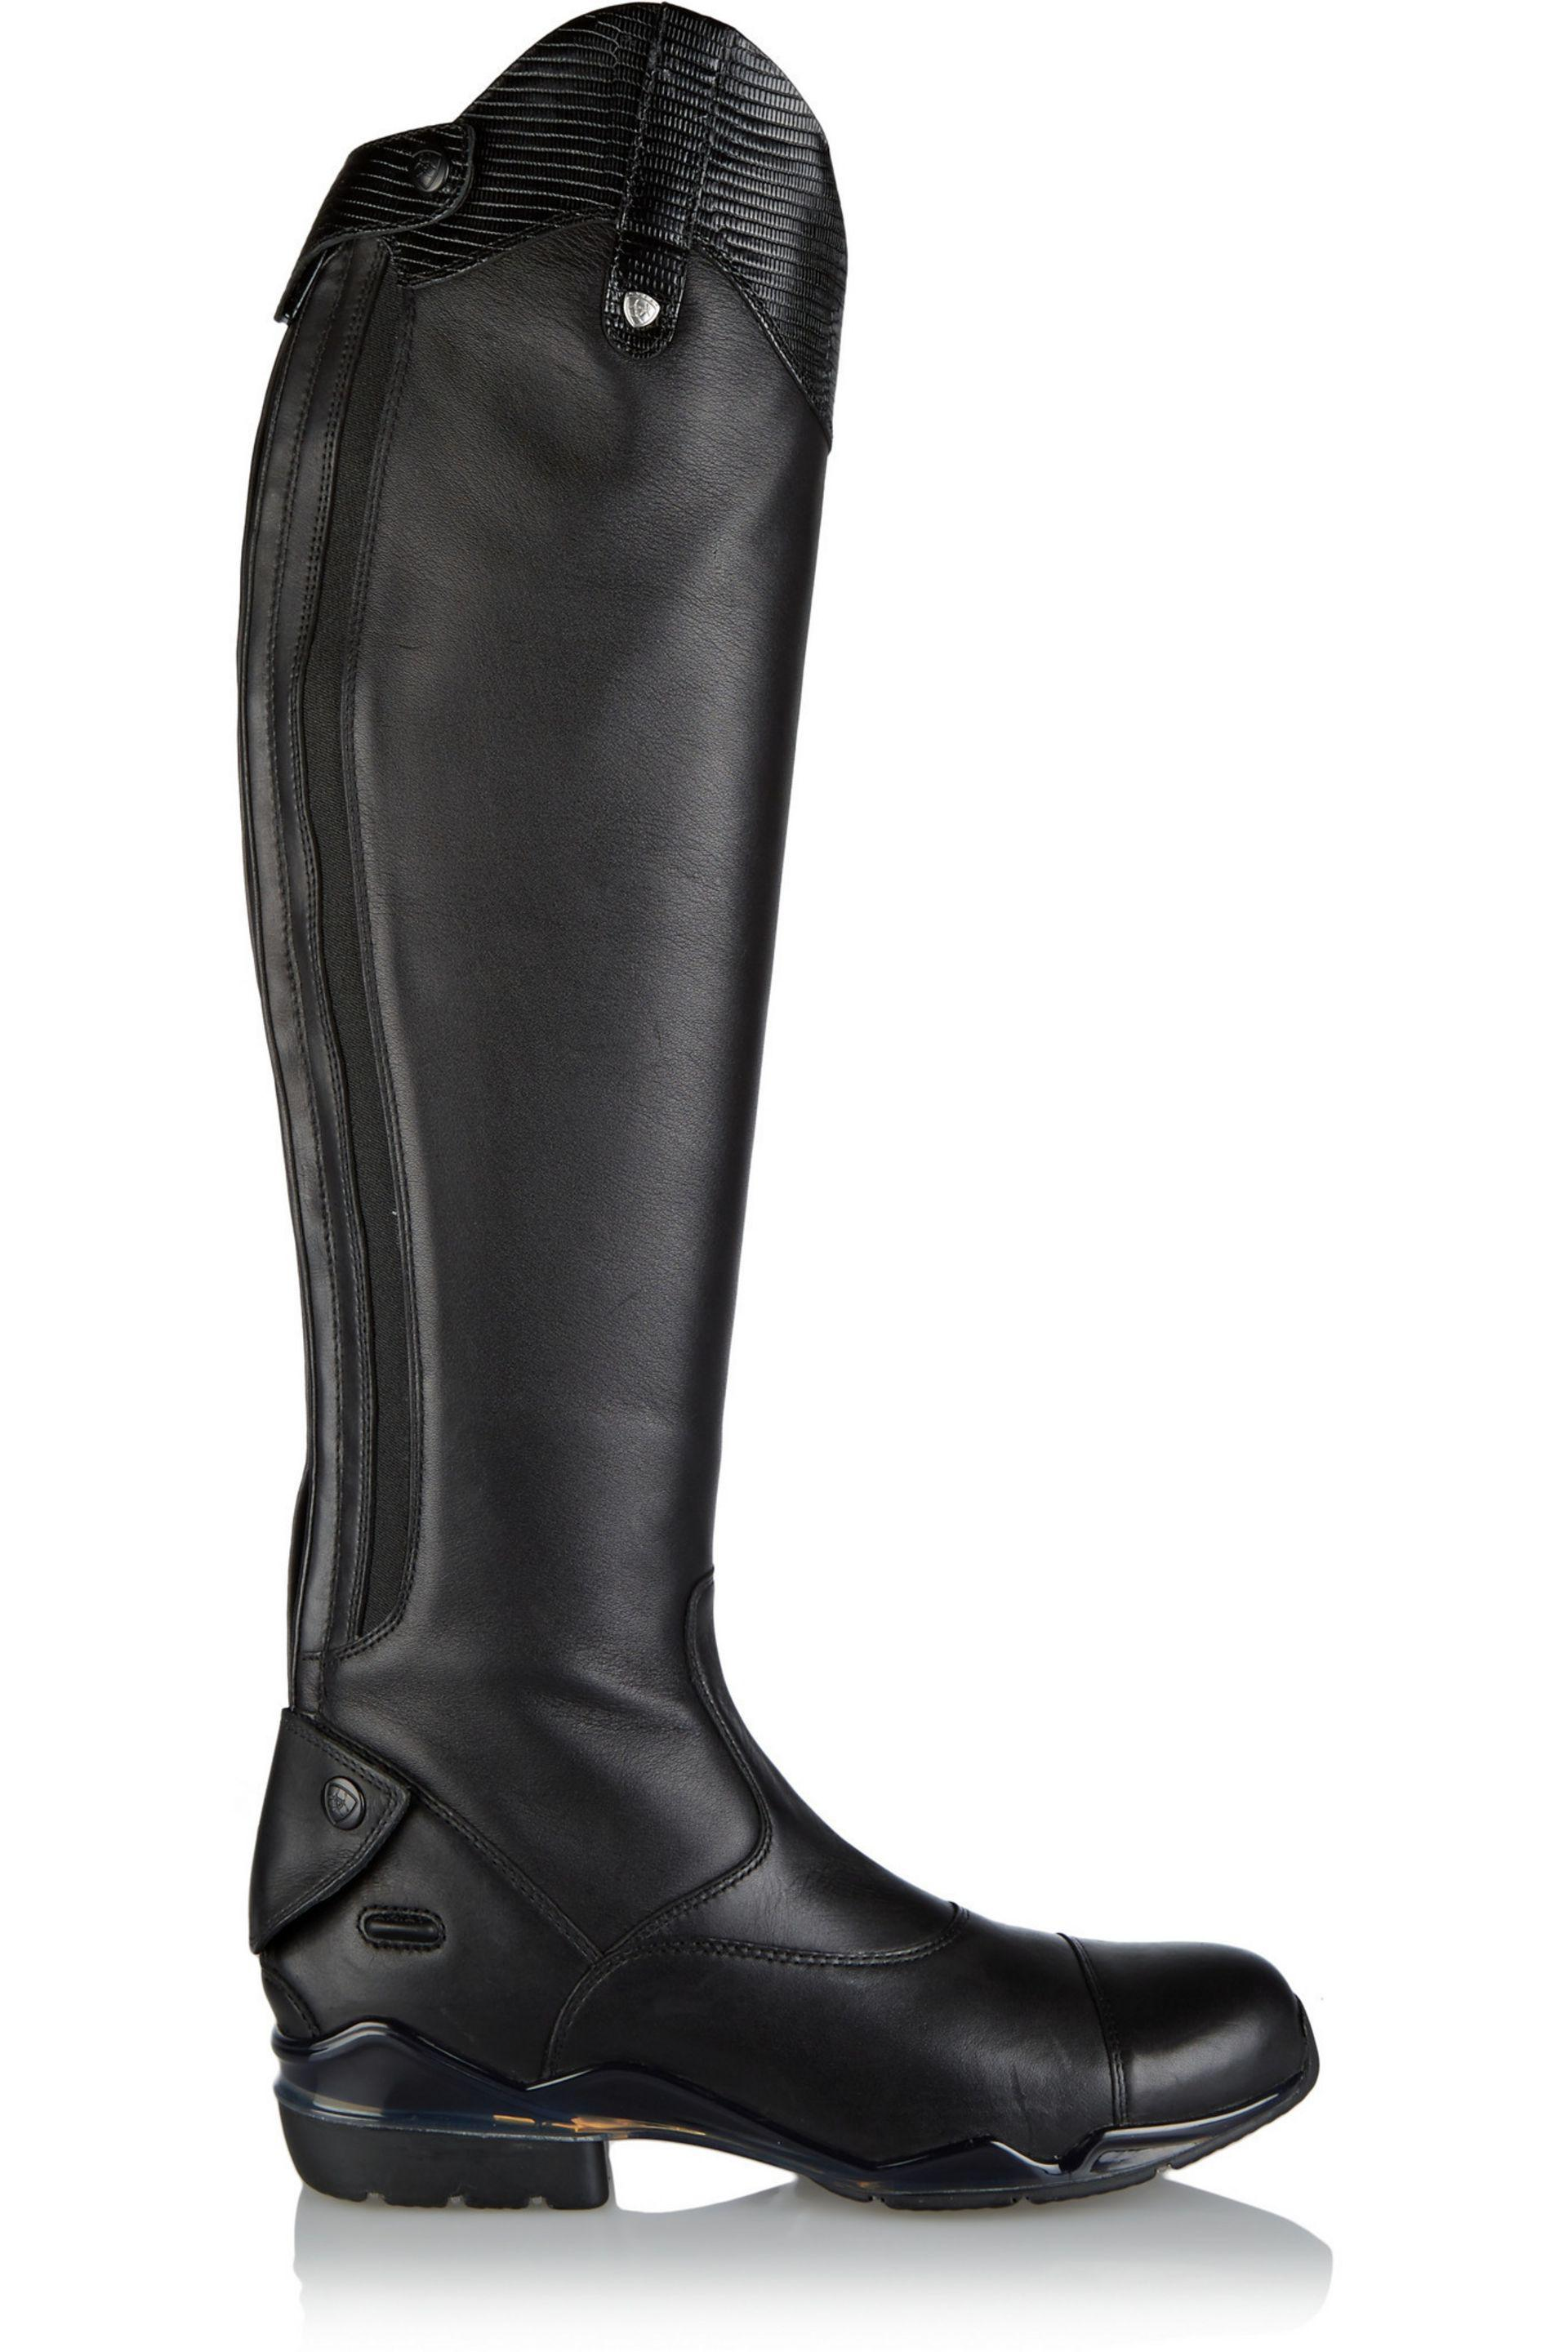 e7ff0a43eb71 Ariat Volant S Leather Riding Boots in Black - Lyst